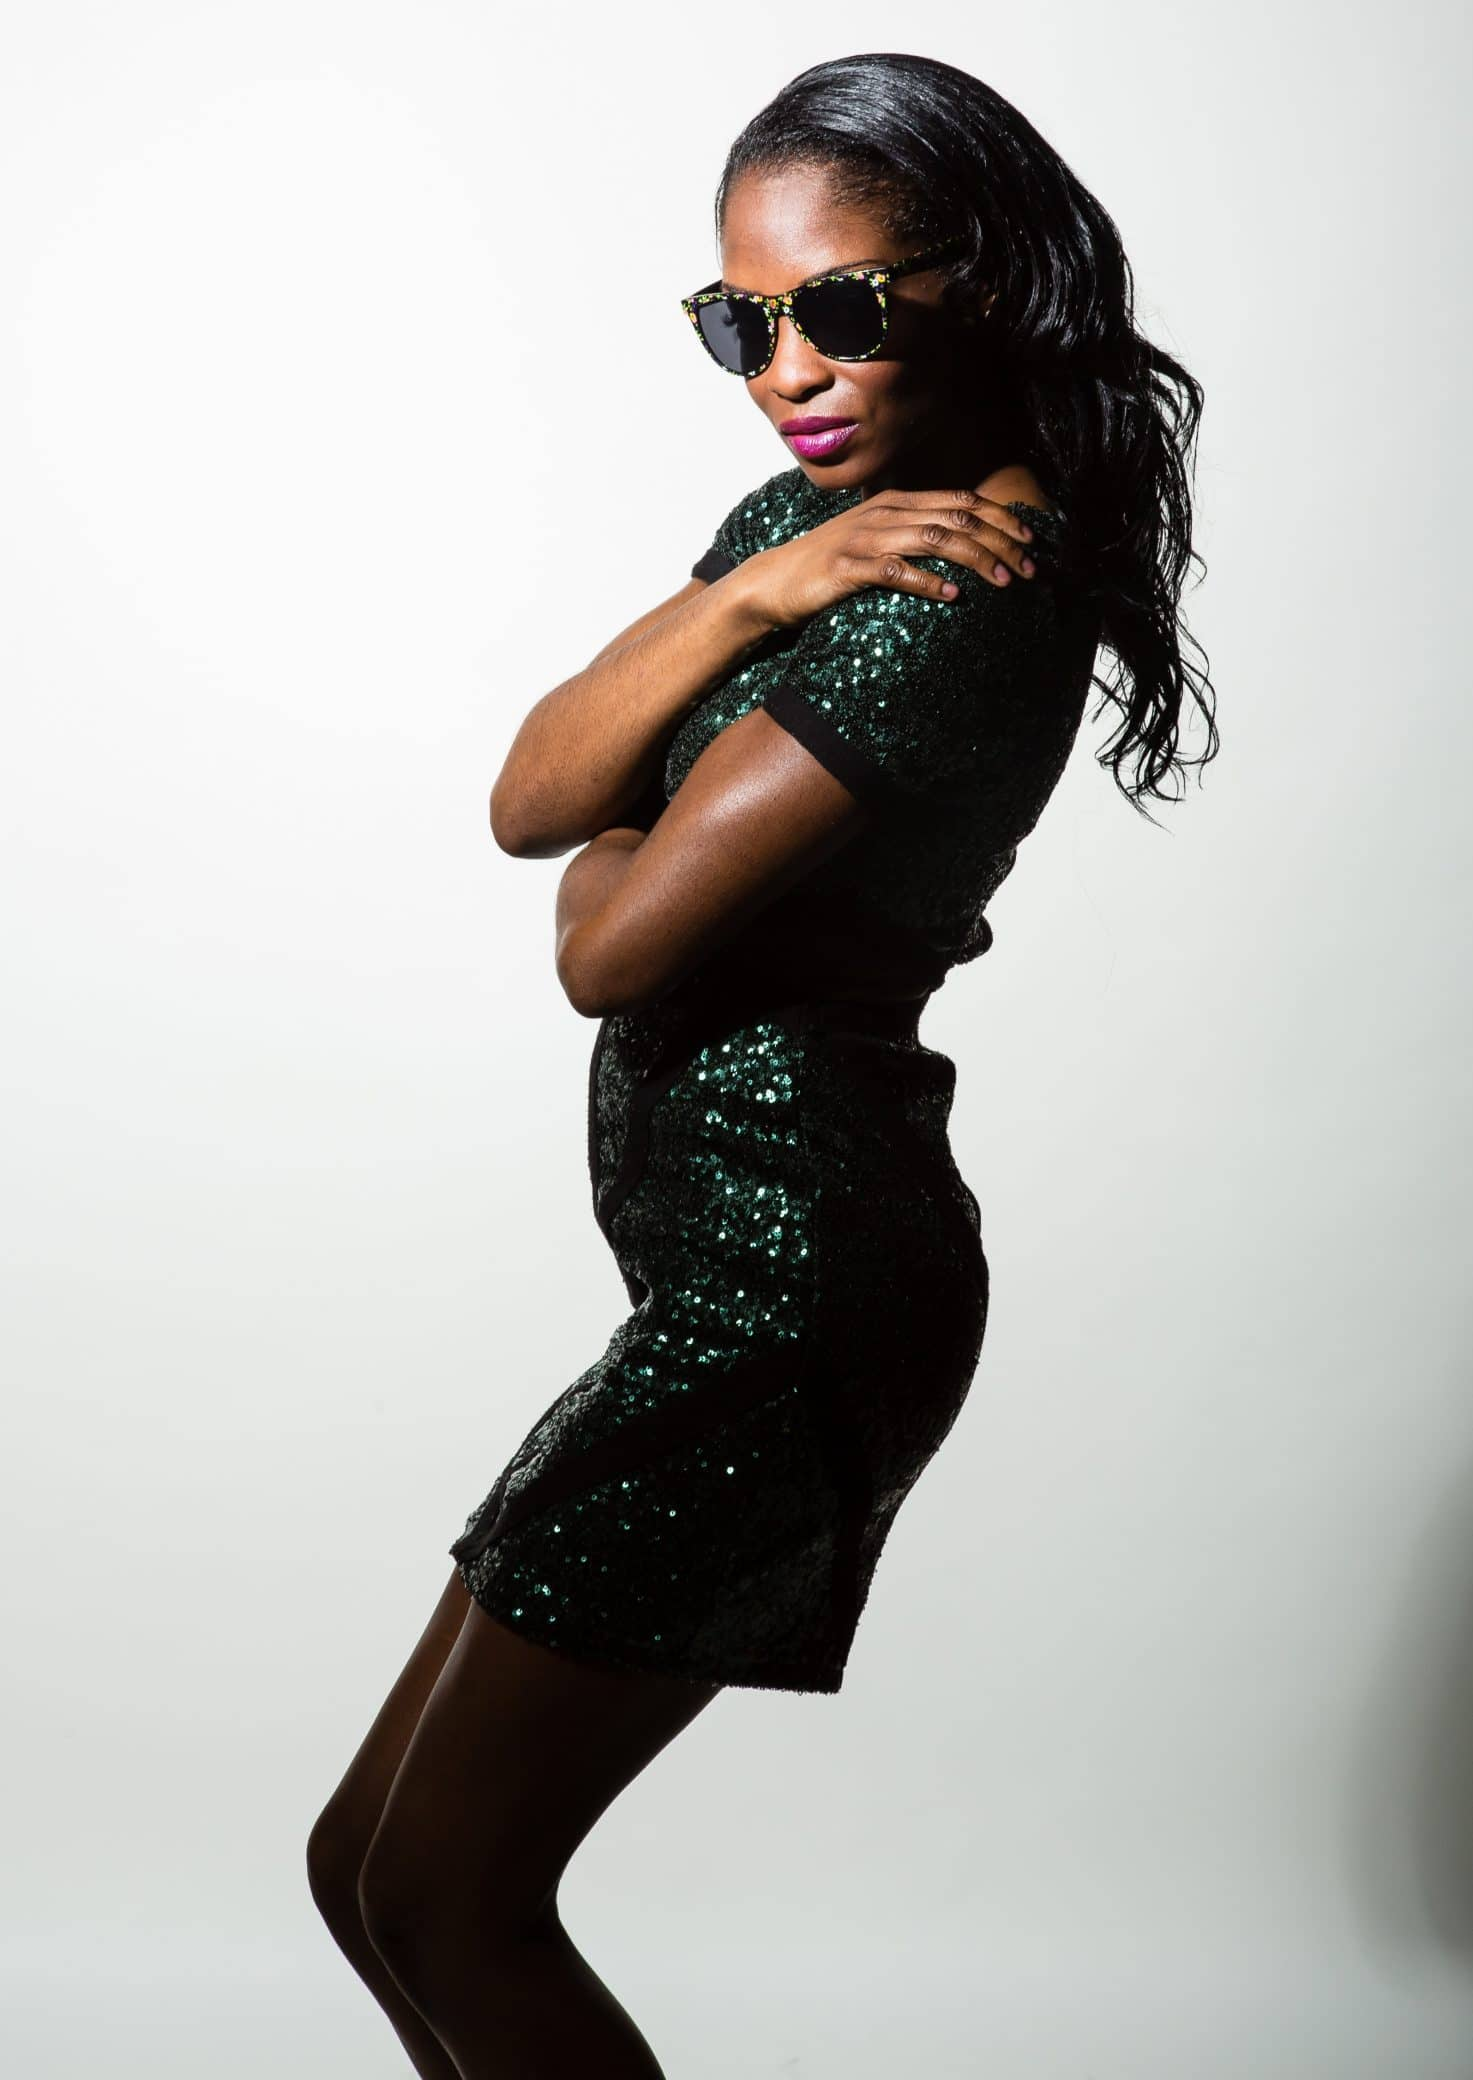 Beautiful black woman wearing a tight sparkling green dress showing her right side with her arms to herself